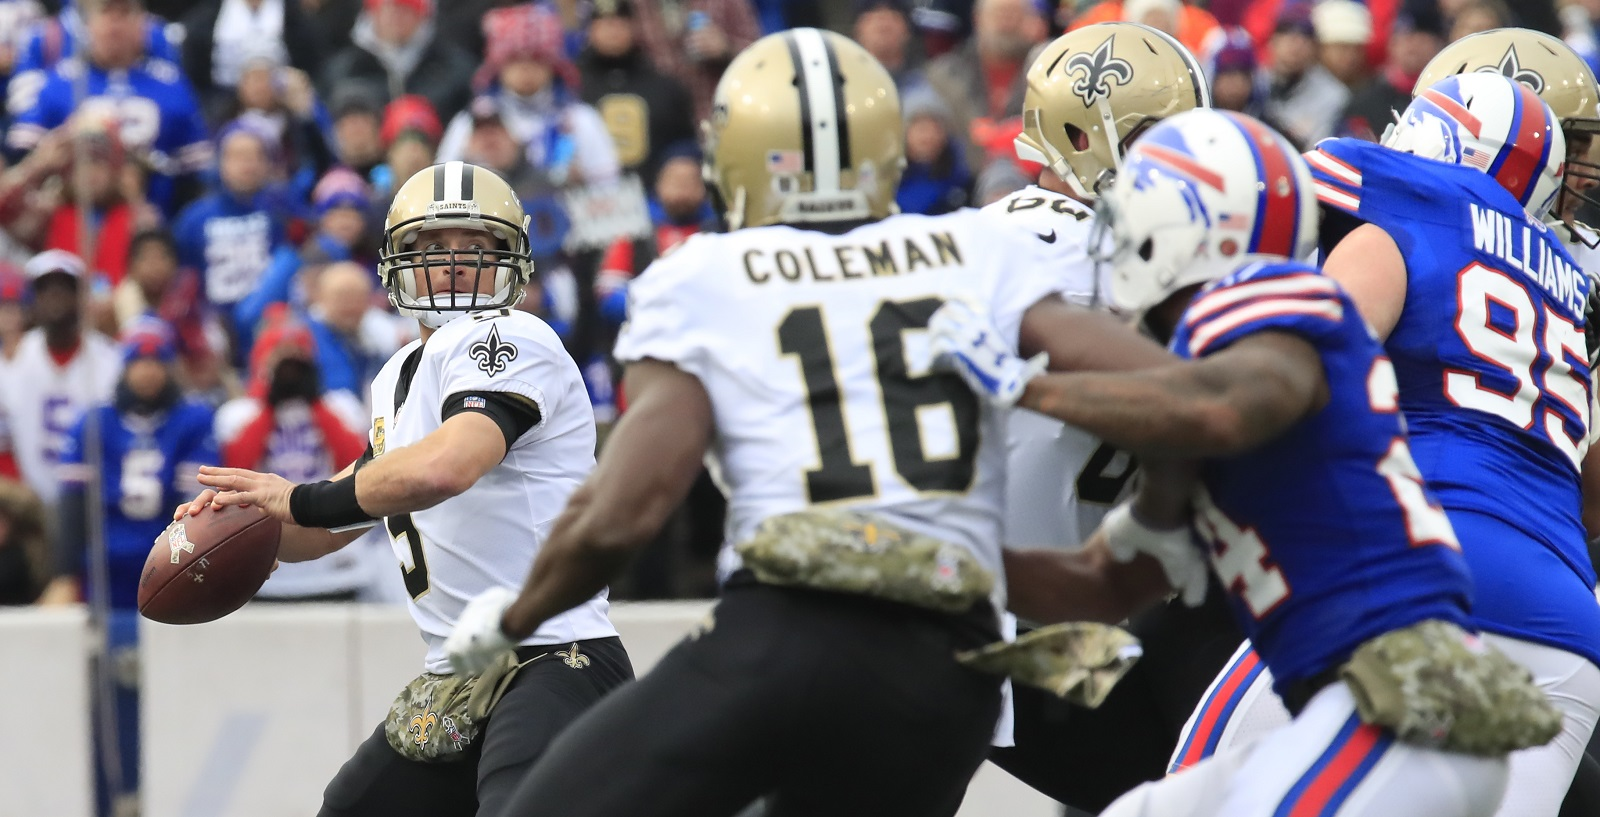 95ee6e9d3 New Orleans Saints quarterback Drew Brees didn't have to throw much to beat  the Bills, but he had plenty of success when he did. (Harry Scull Jr./  Buffalo ...